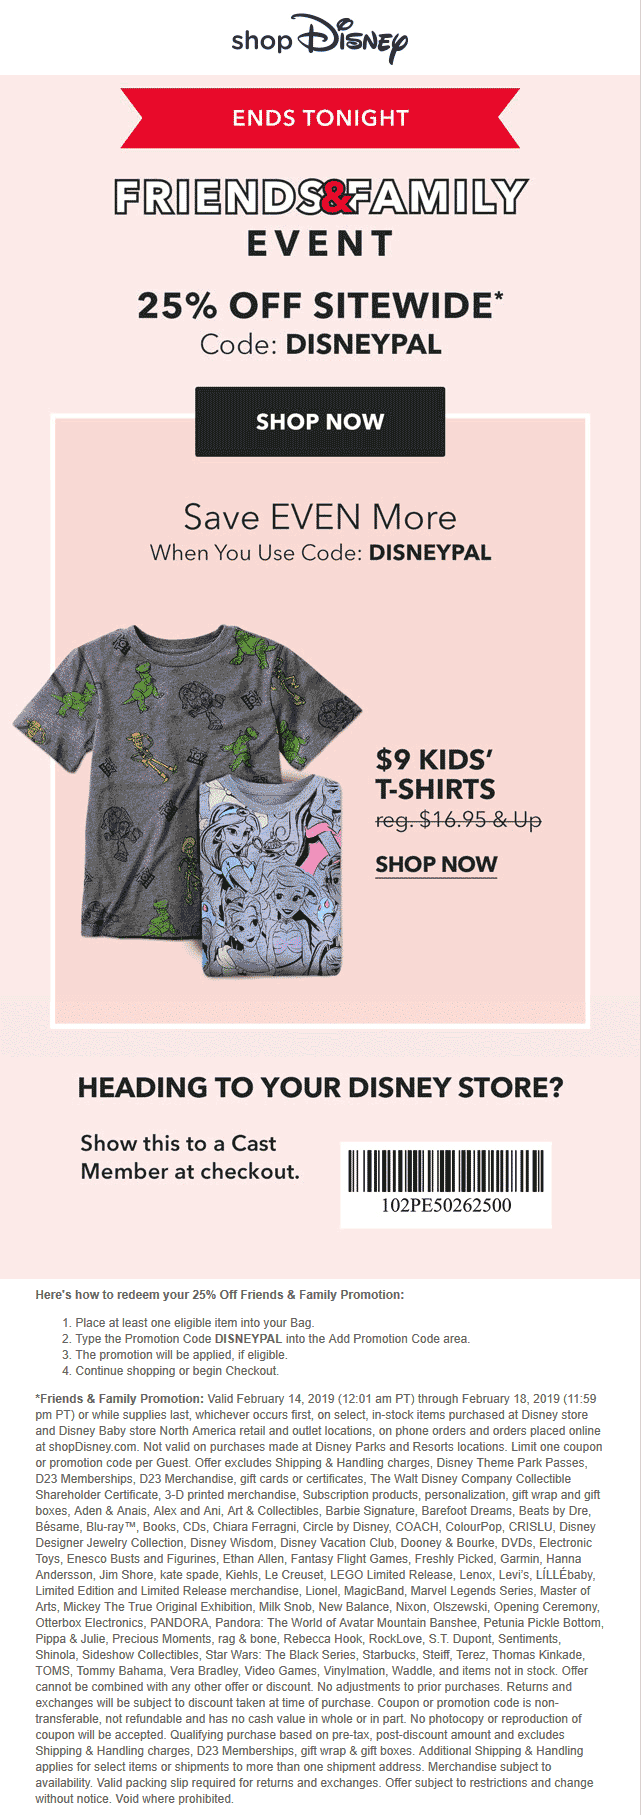 Disney Store Coupon July 2019 25% off today at Disney store, or online via promo code DISNEYPAL